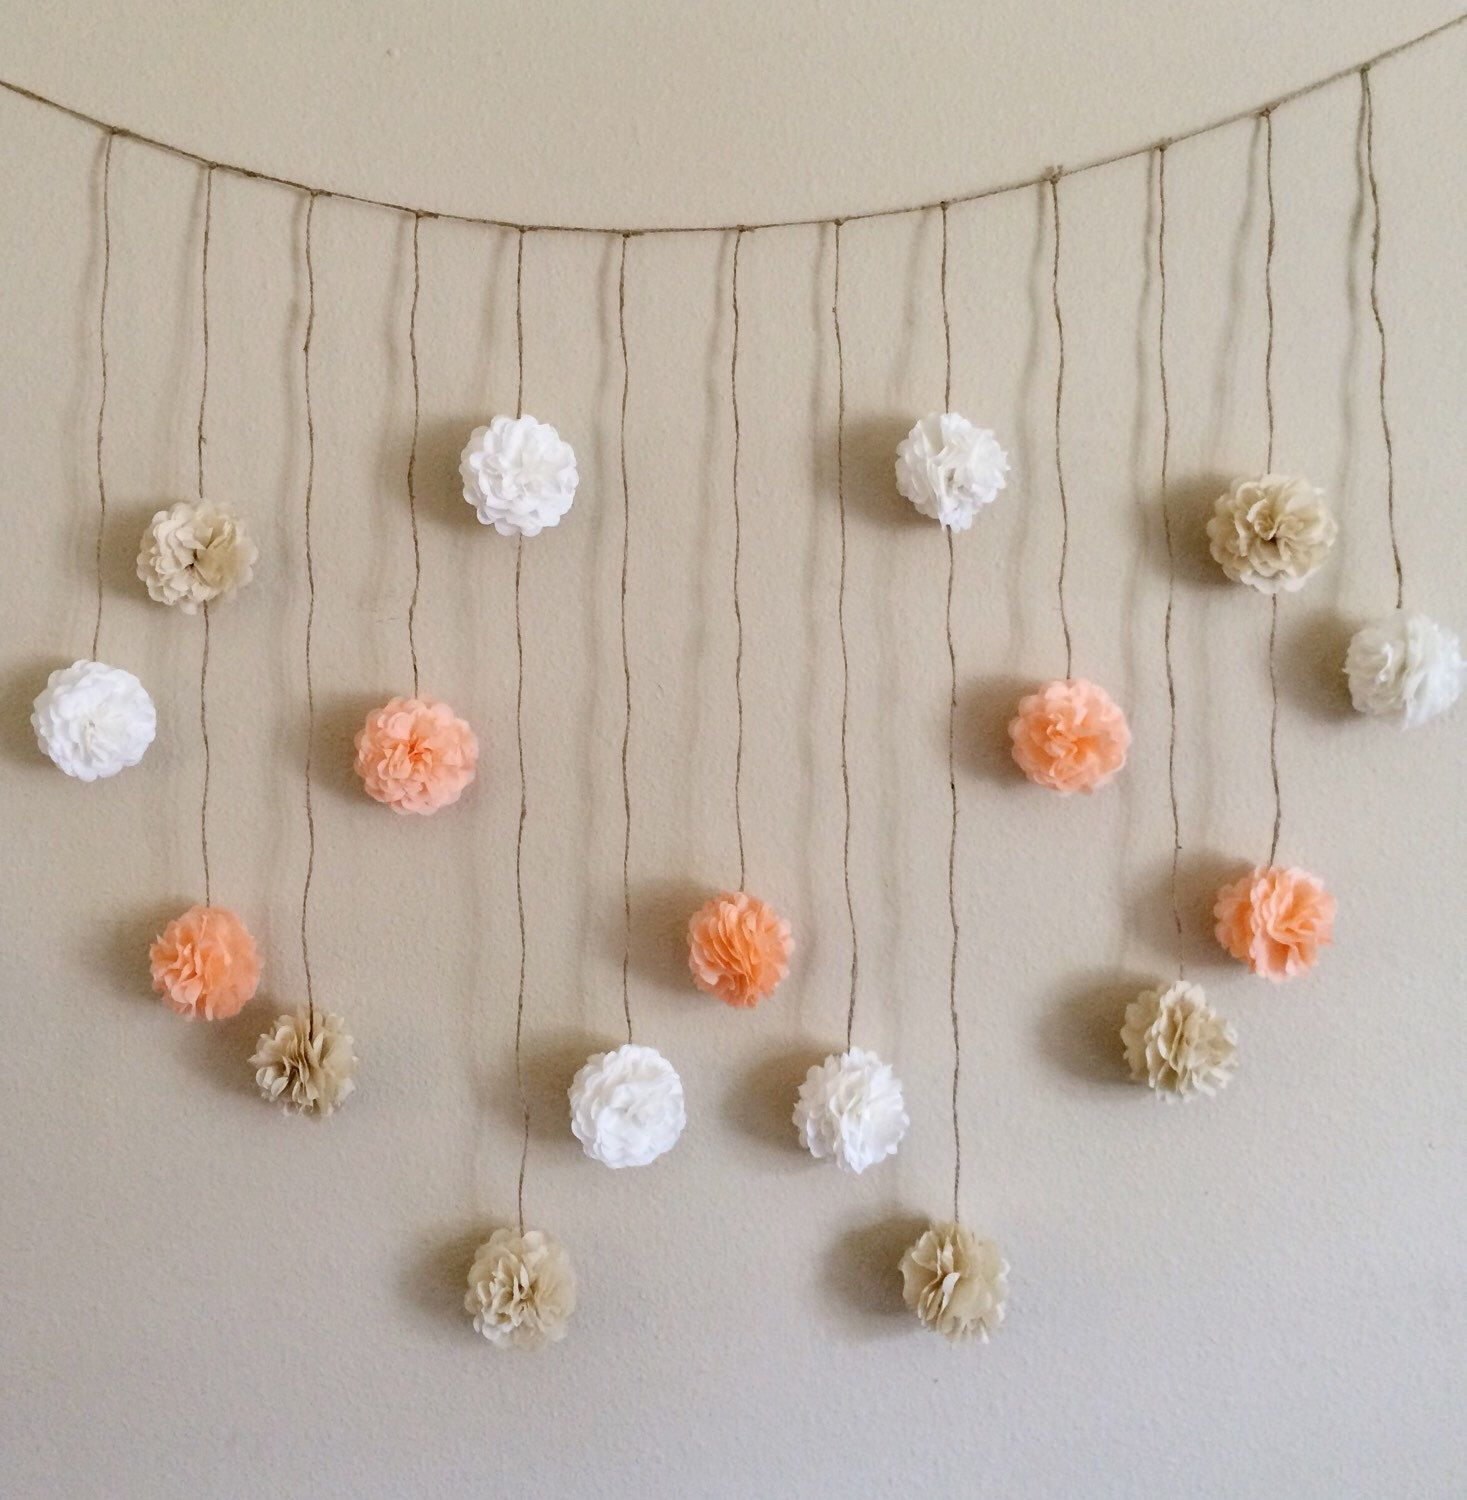 Pom pom garland peach and creams tissue paper flowers wedding pom pom garland peach and creams tissue paper flowers wedding garland diy kit party dhlflorist Choice Image